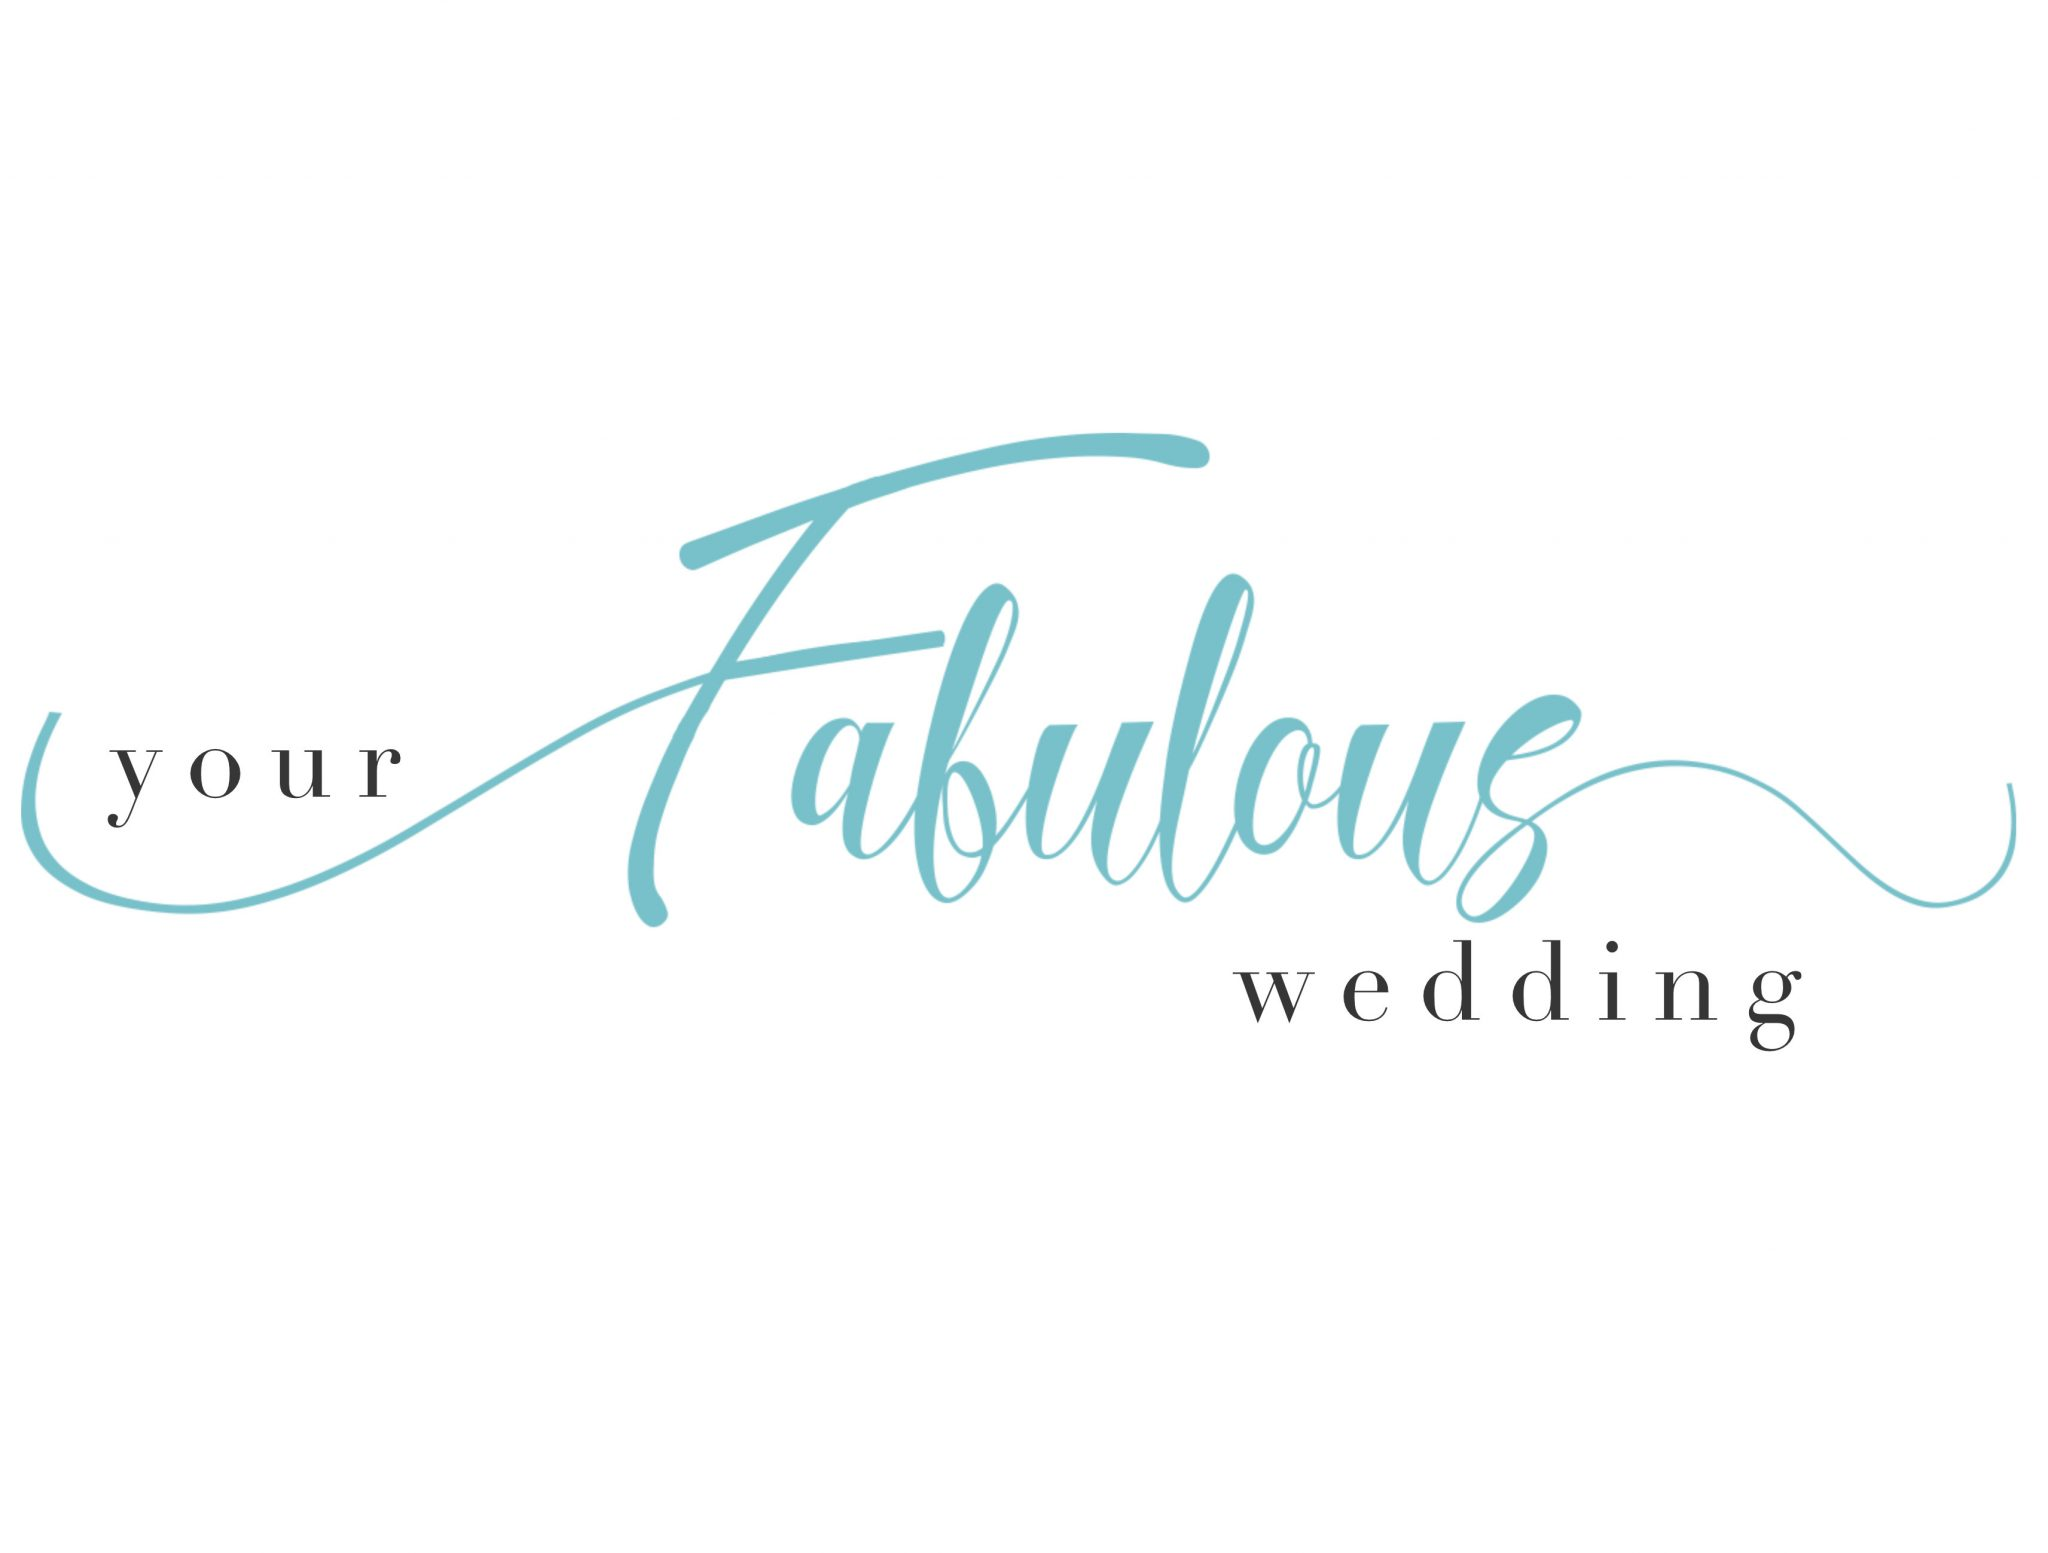 Your Fabulous Wedding